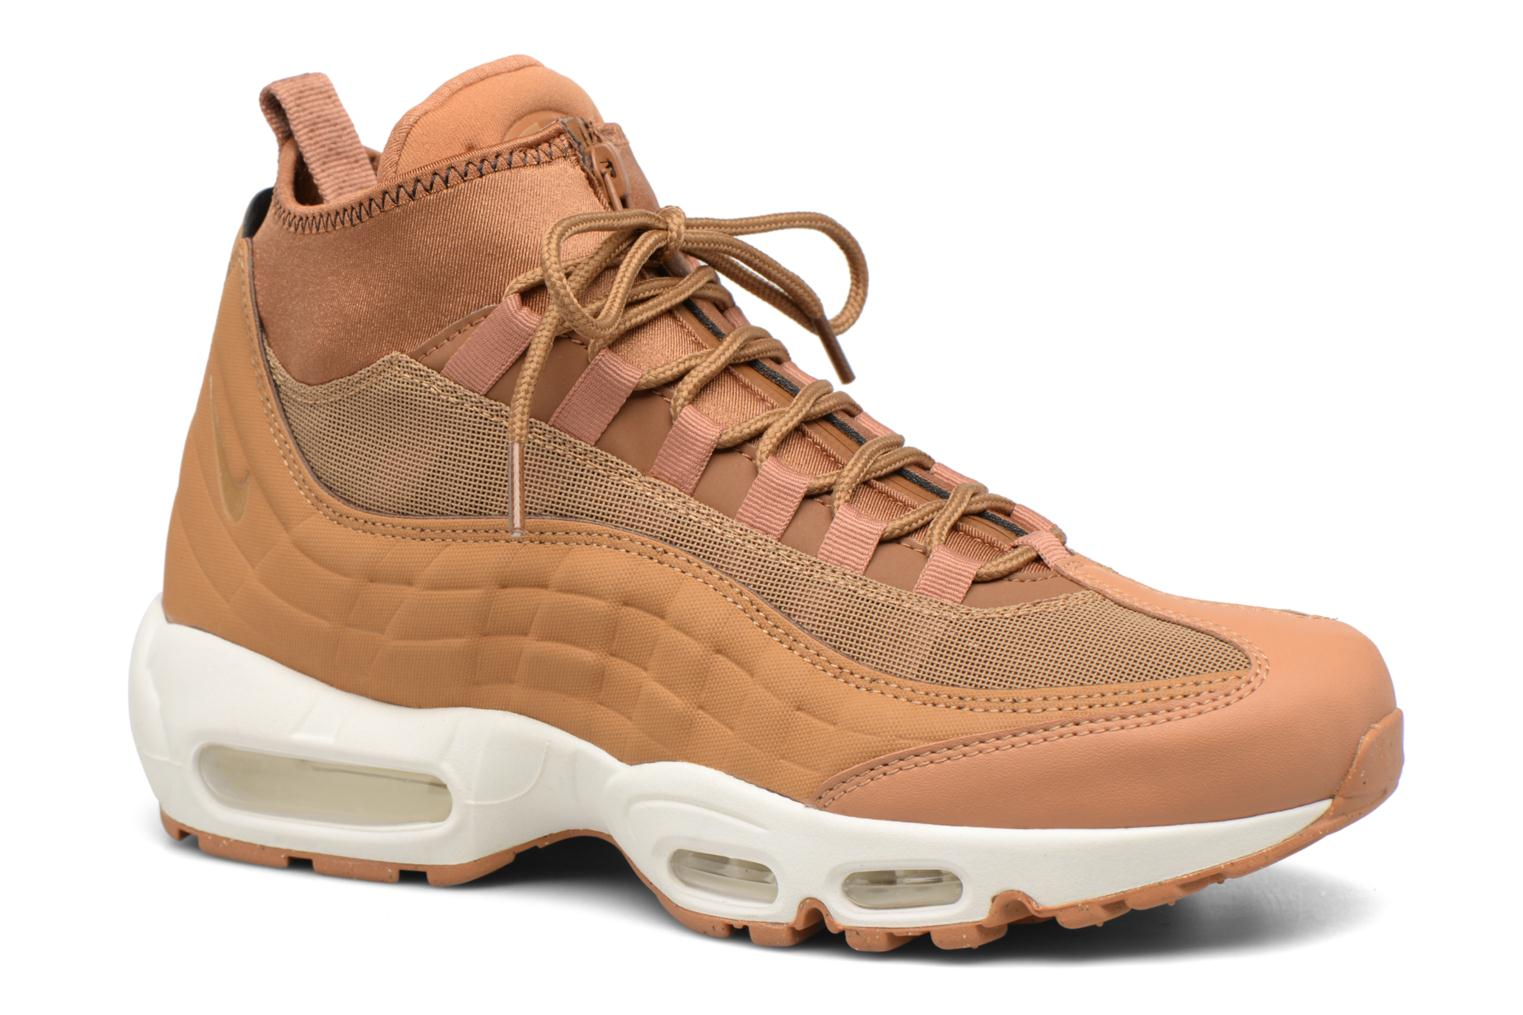 Baskets Nike Nike Air Max 95 Sneakerboot Marron vue détail/paire